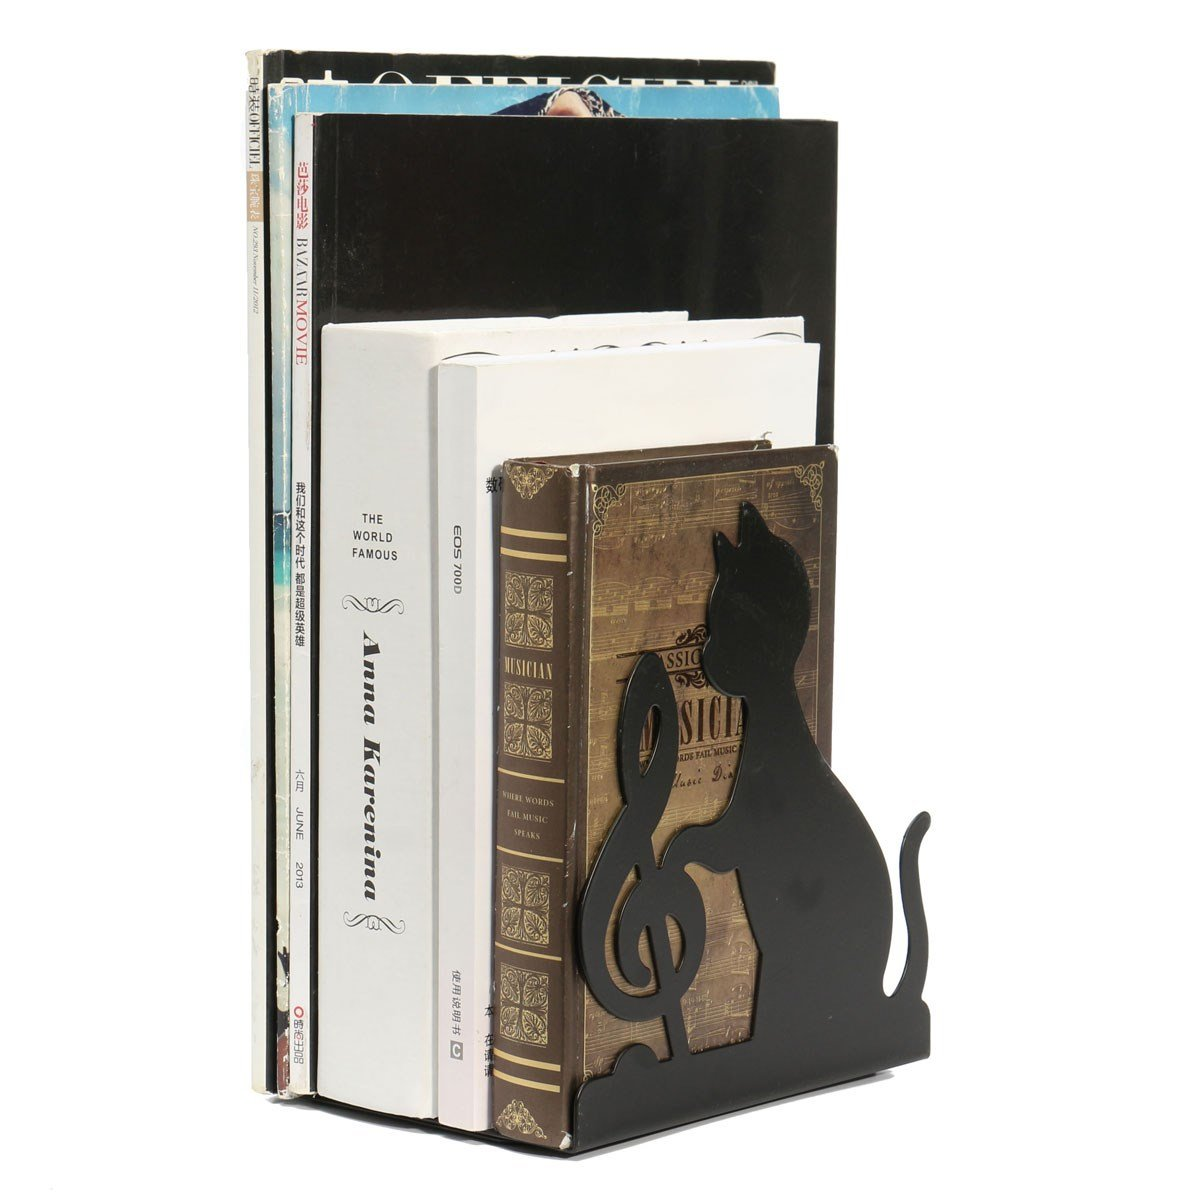 1 Pair Metal Book Cat Bookend Holder Iron Cute Animal Music Themed Black Cat Playing Violin Bookend by Xiaolanwelc